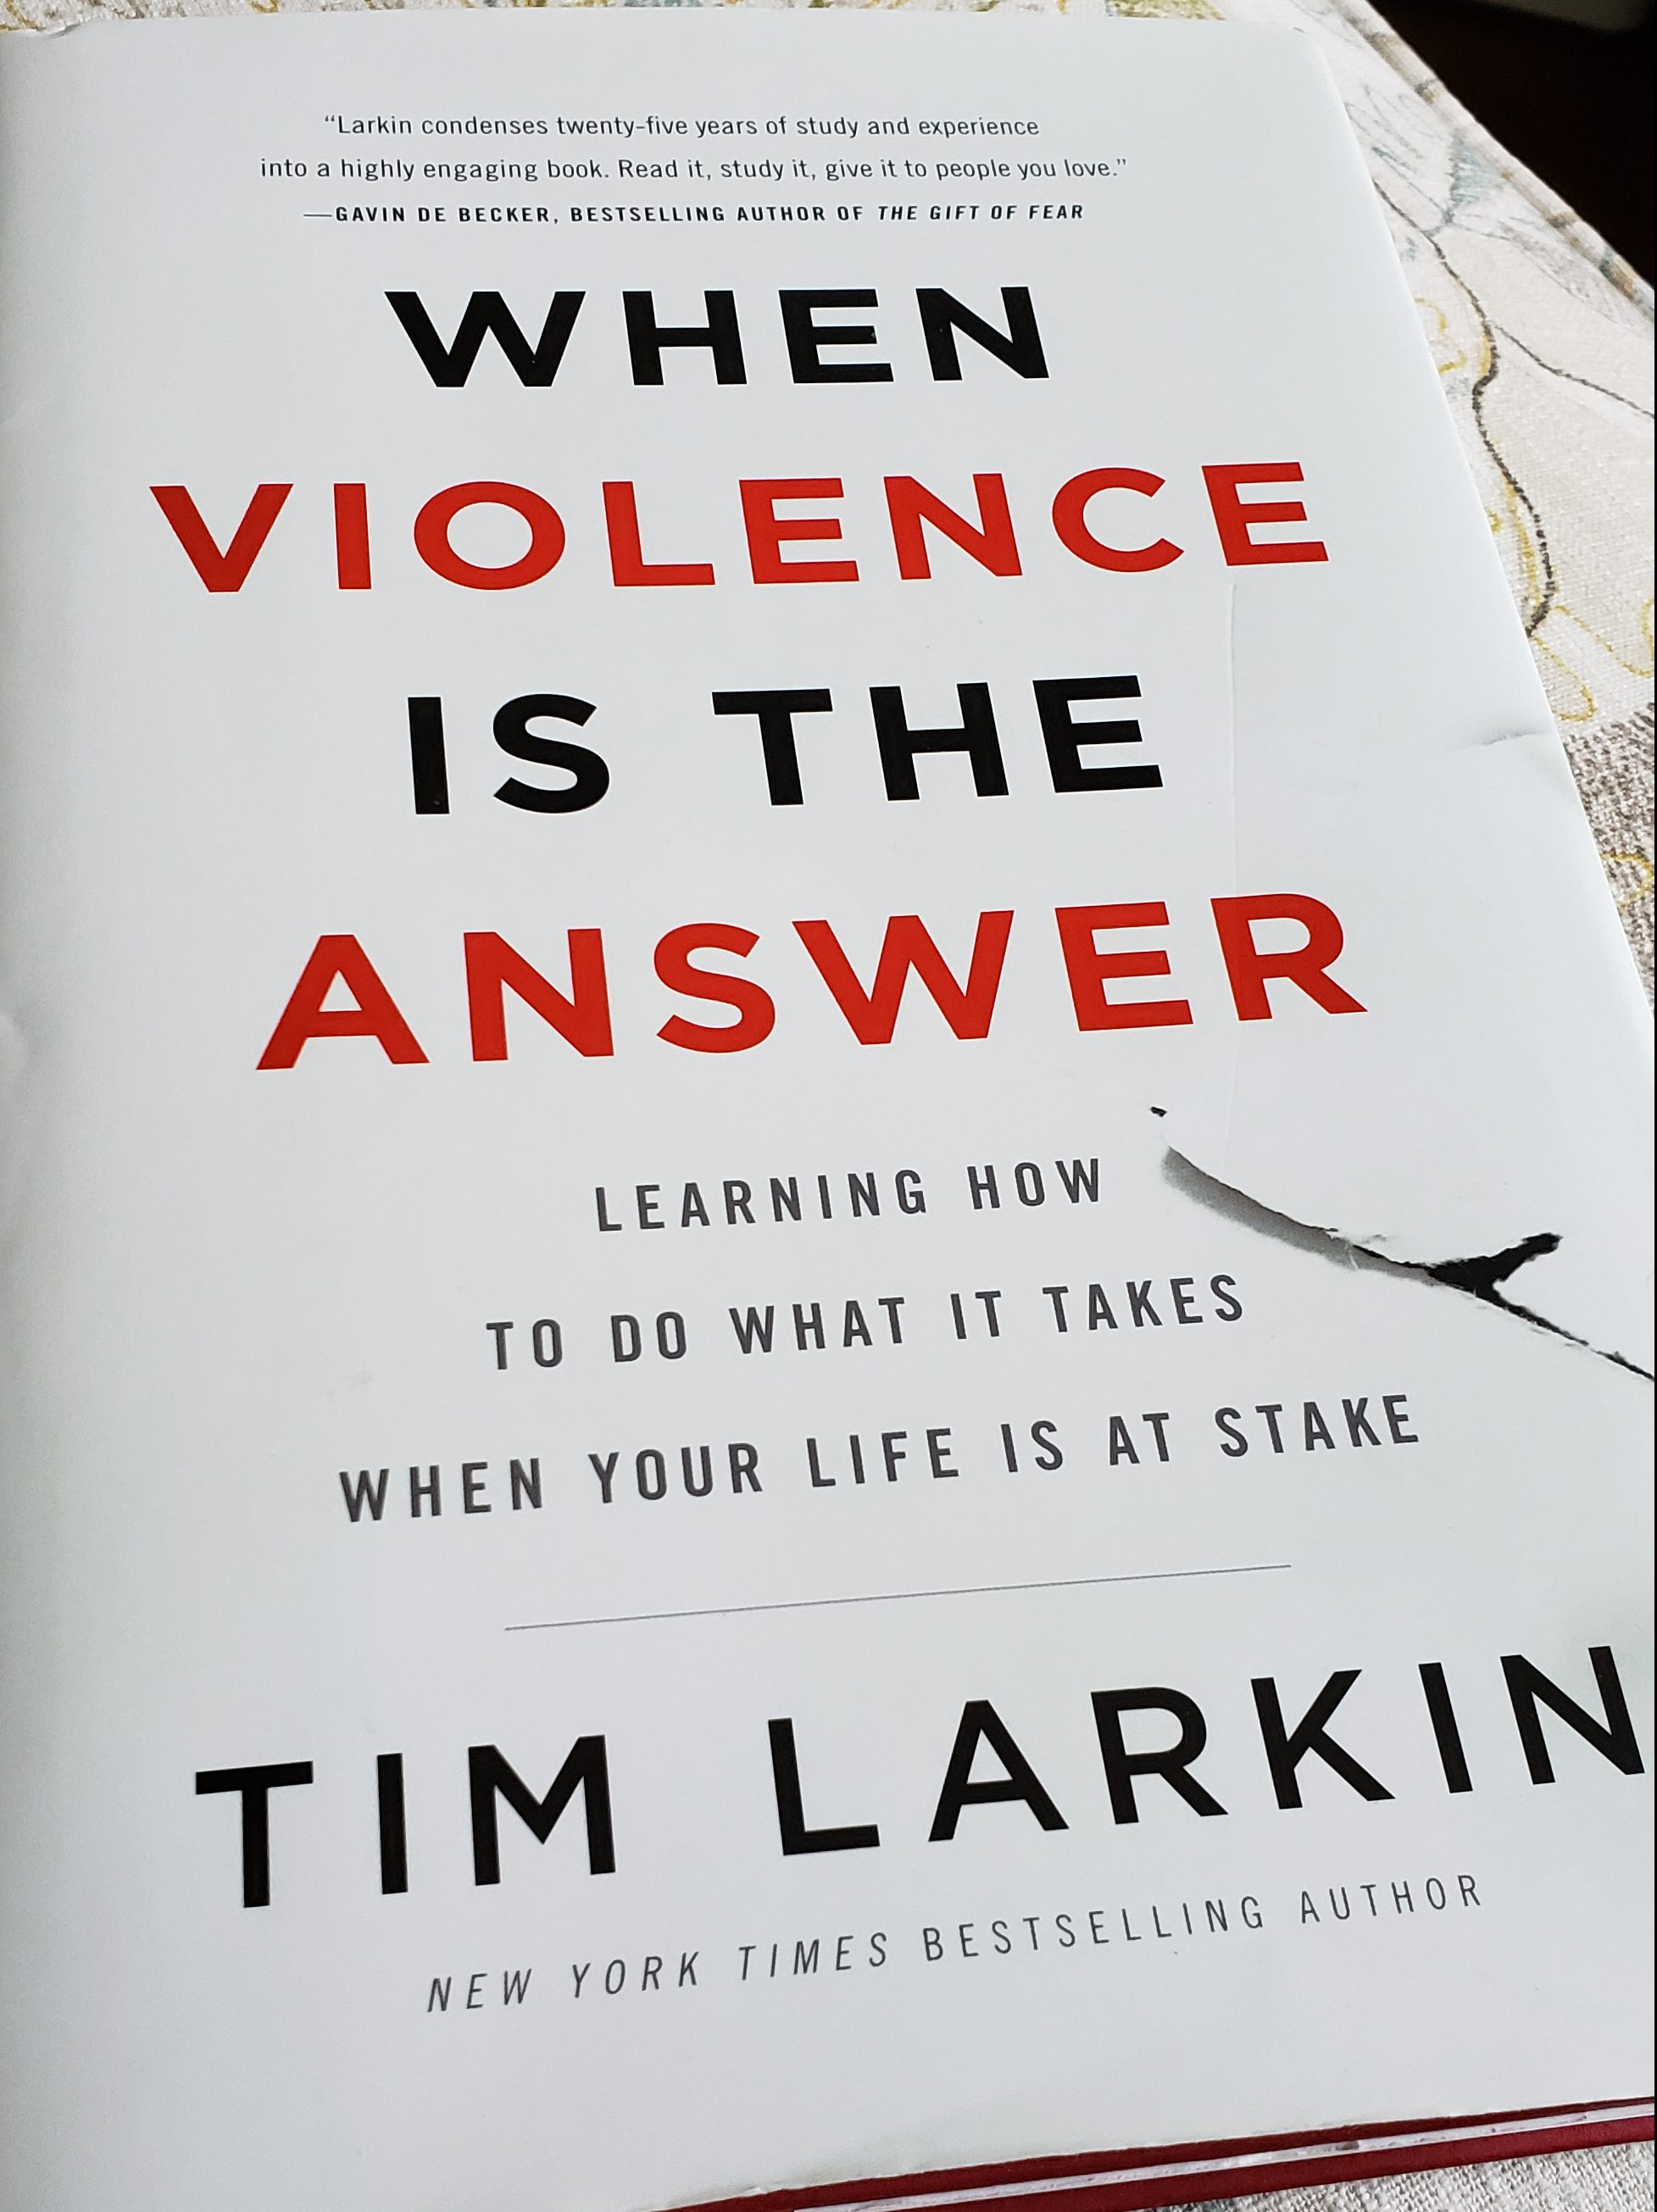 When Violence is the Only Answer